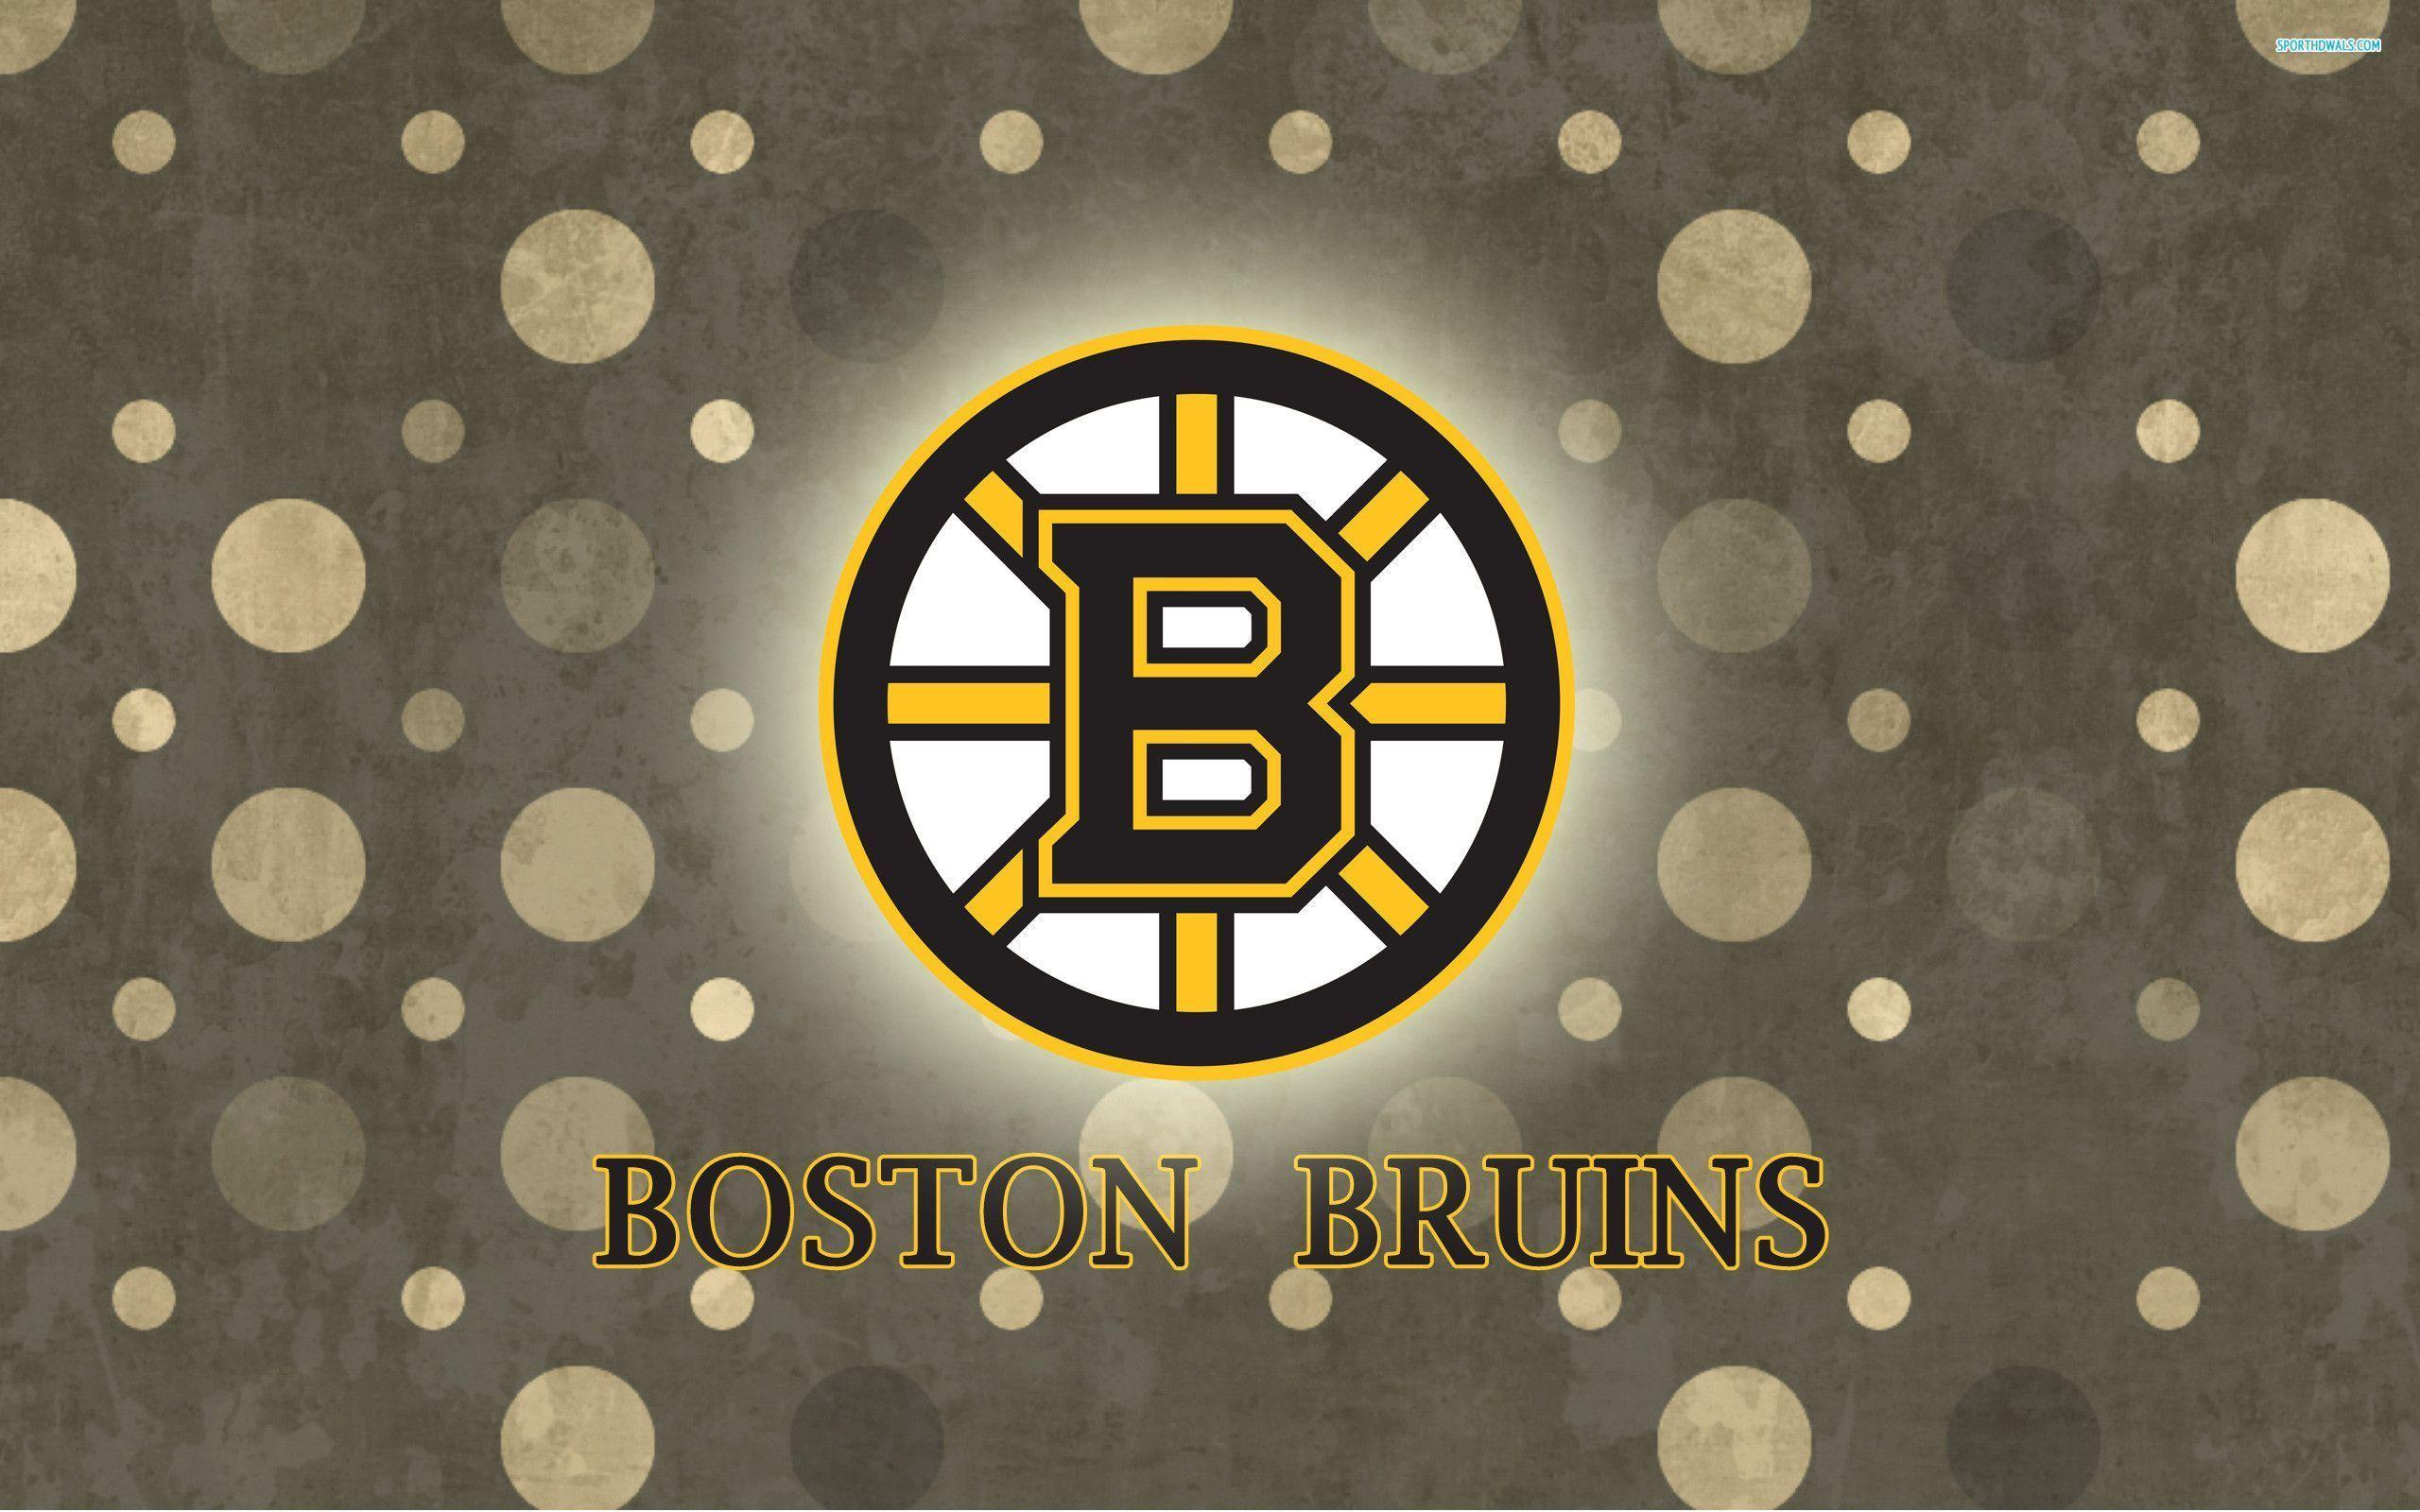 Boston Bruins Wallpapers | Boston Bruins Background 1 | Chainimage